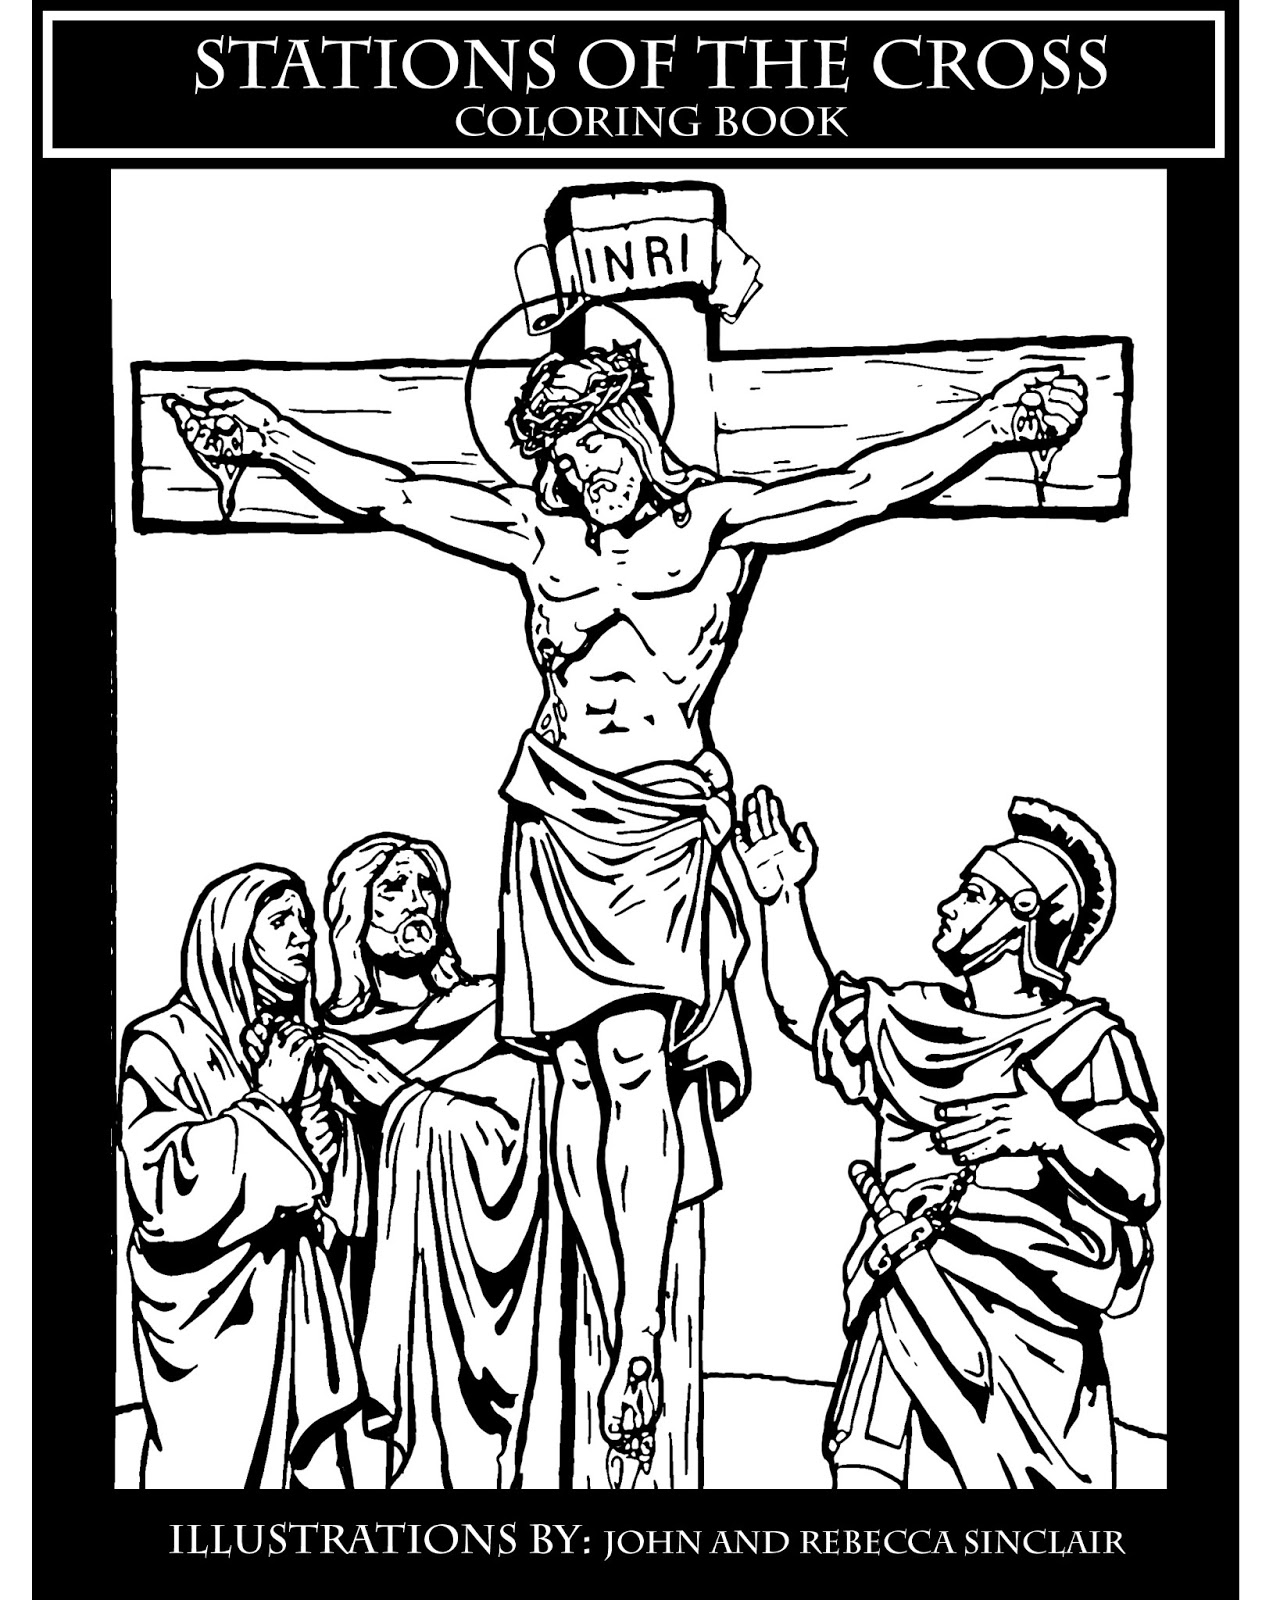 stations of the cross coloring pages - art blog